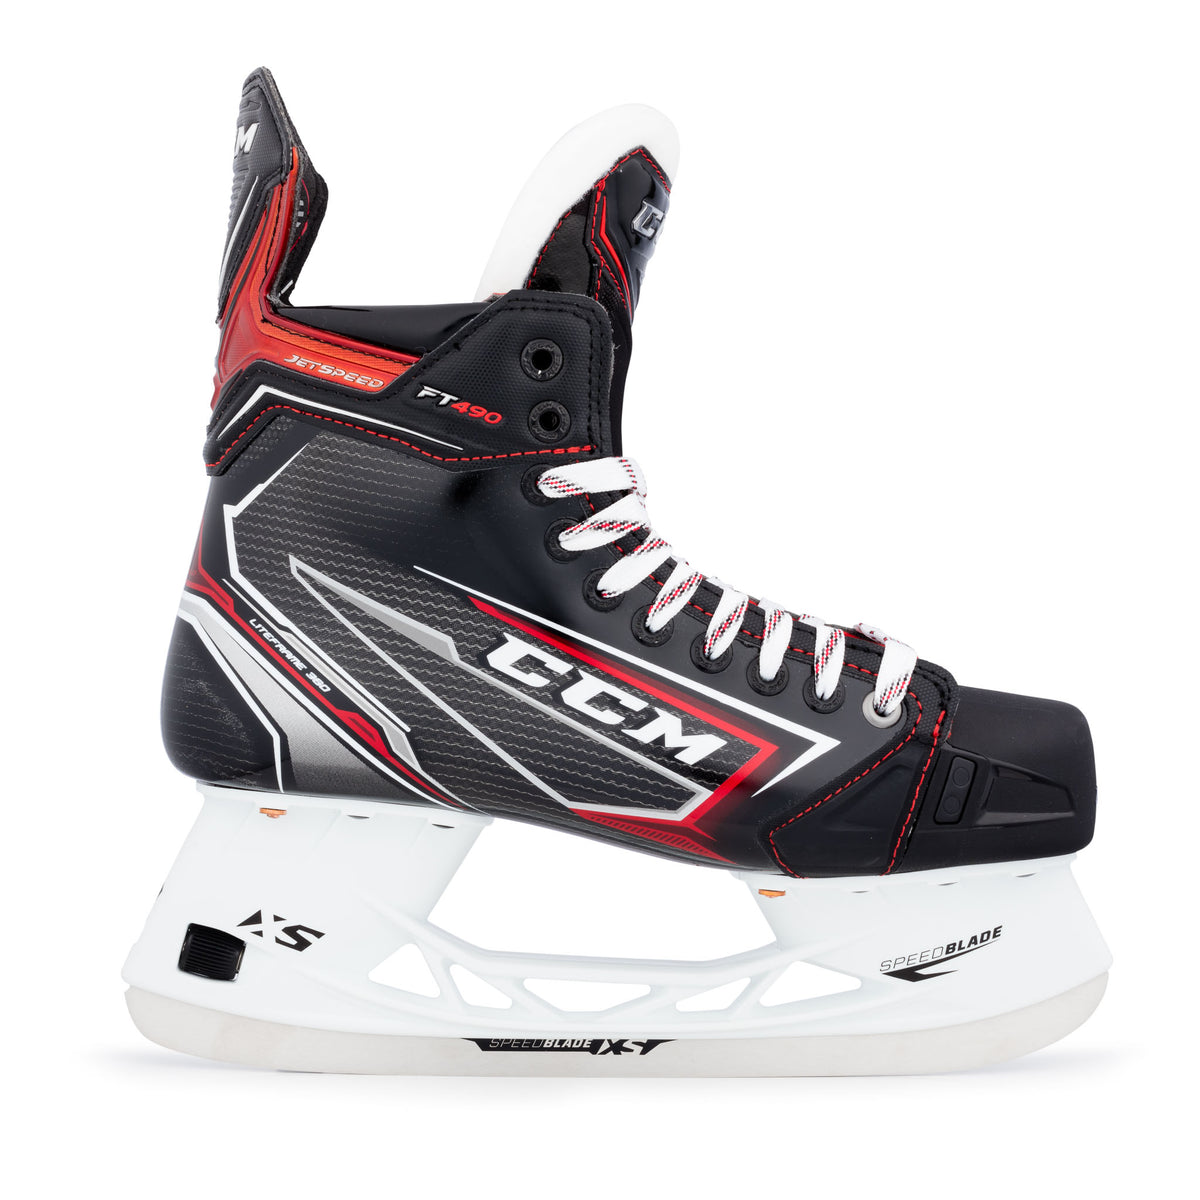 CCM Jetspeed FT490 Junior Hockey Skates